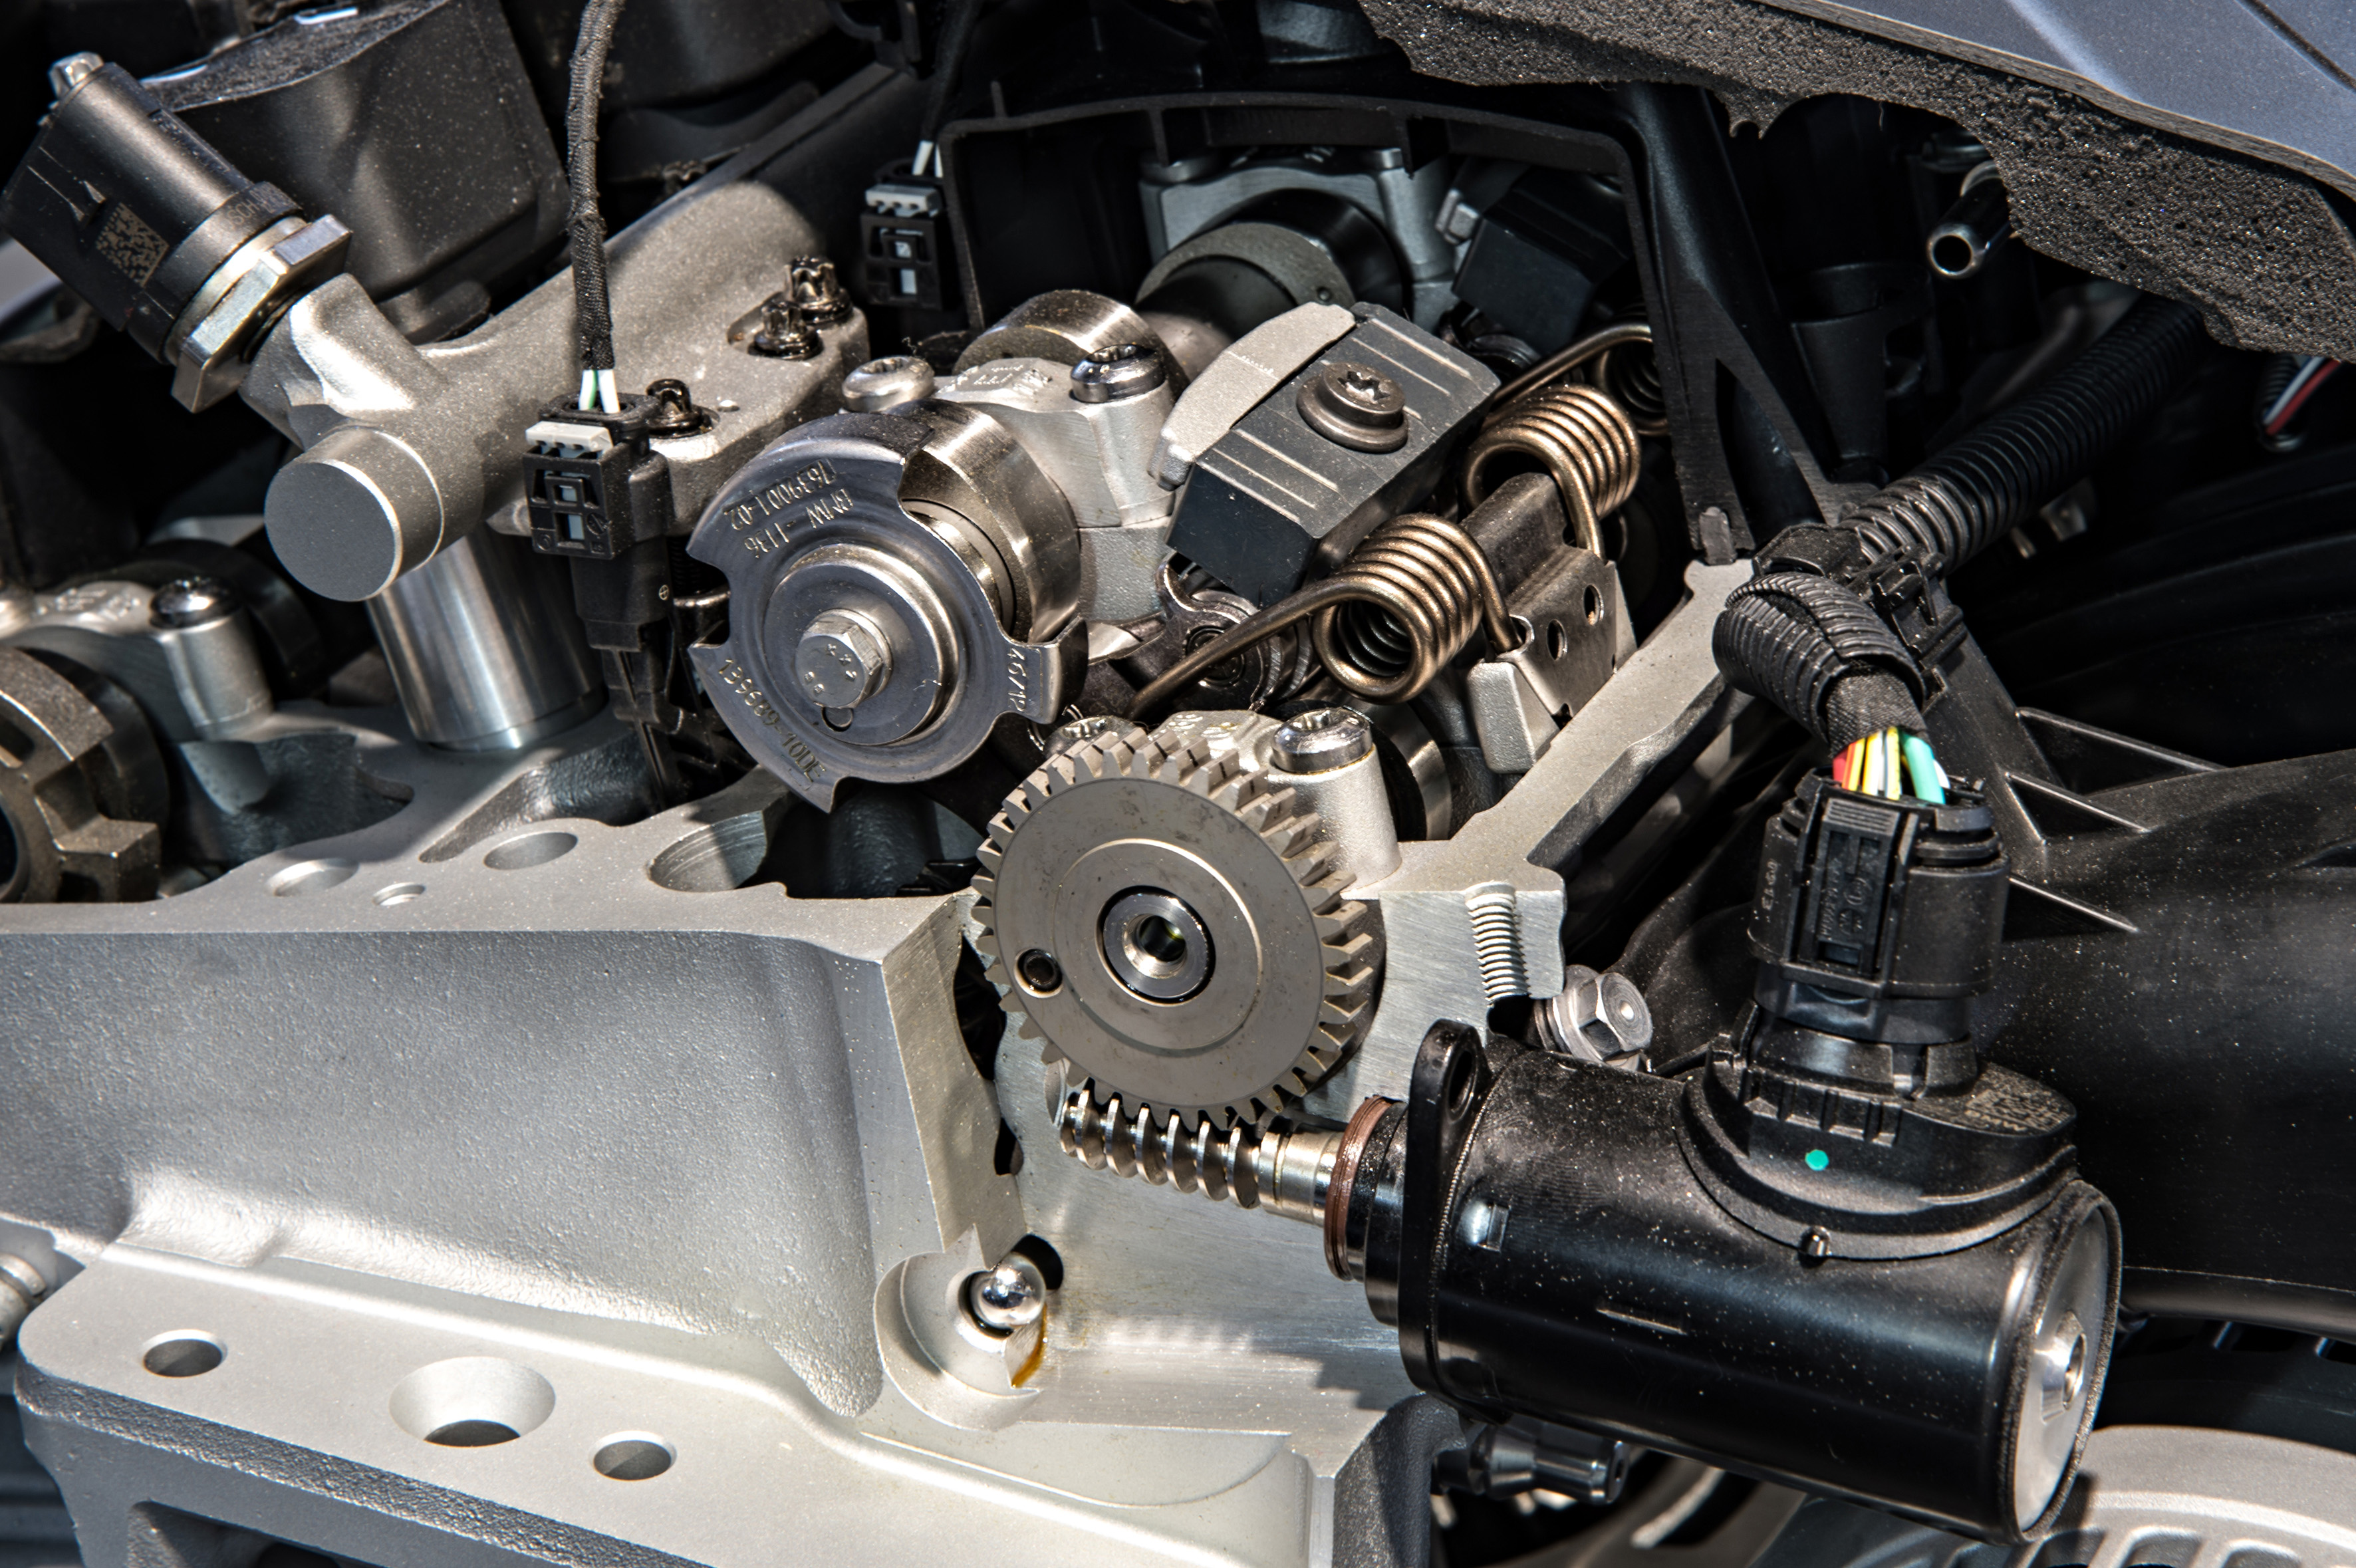 Watch in addition Bmw 335i N54 N55 Single Turbo Kit likewise Showthread together with Detail 8 33 1131 besides P90143704 highres. on bmw n55 engine